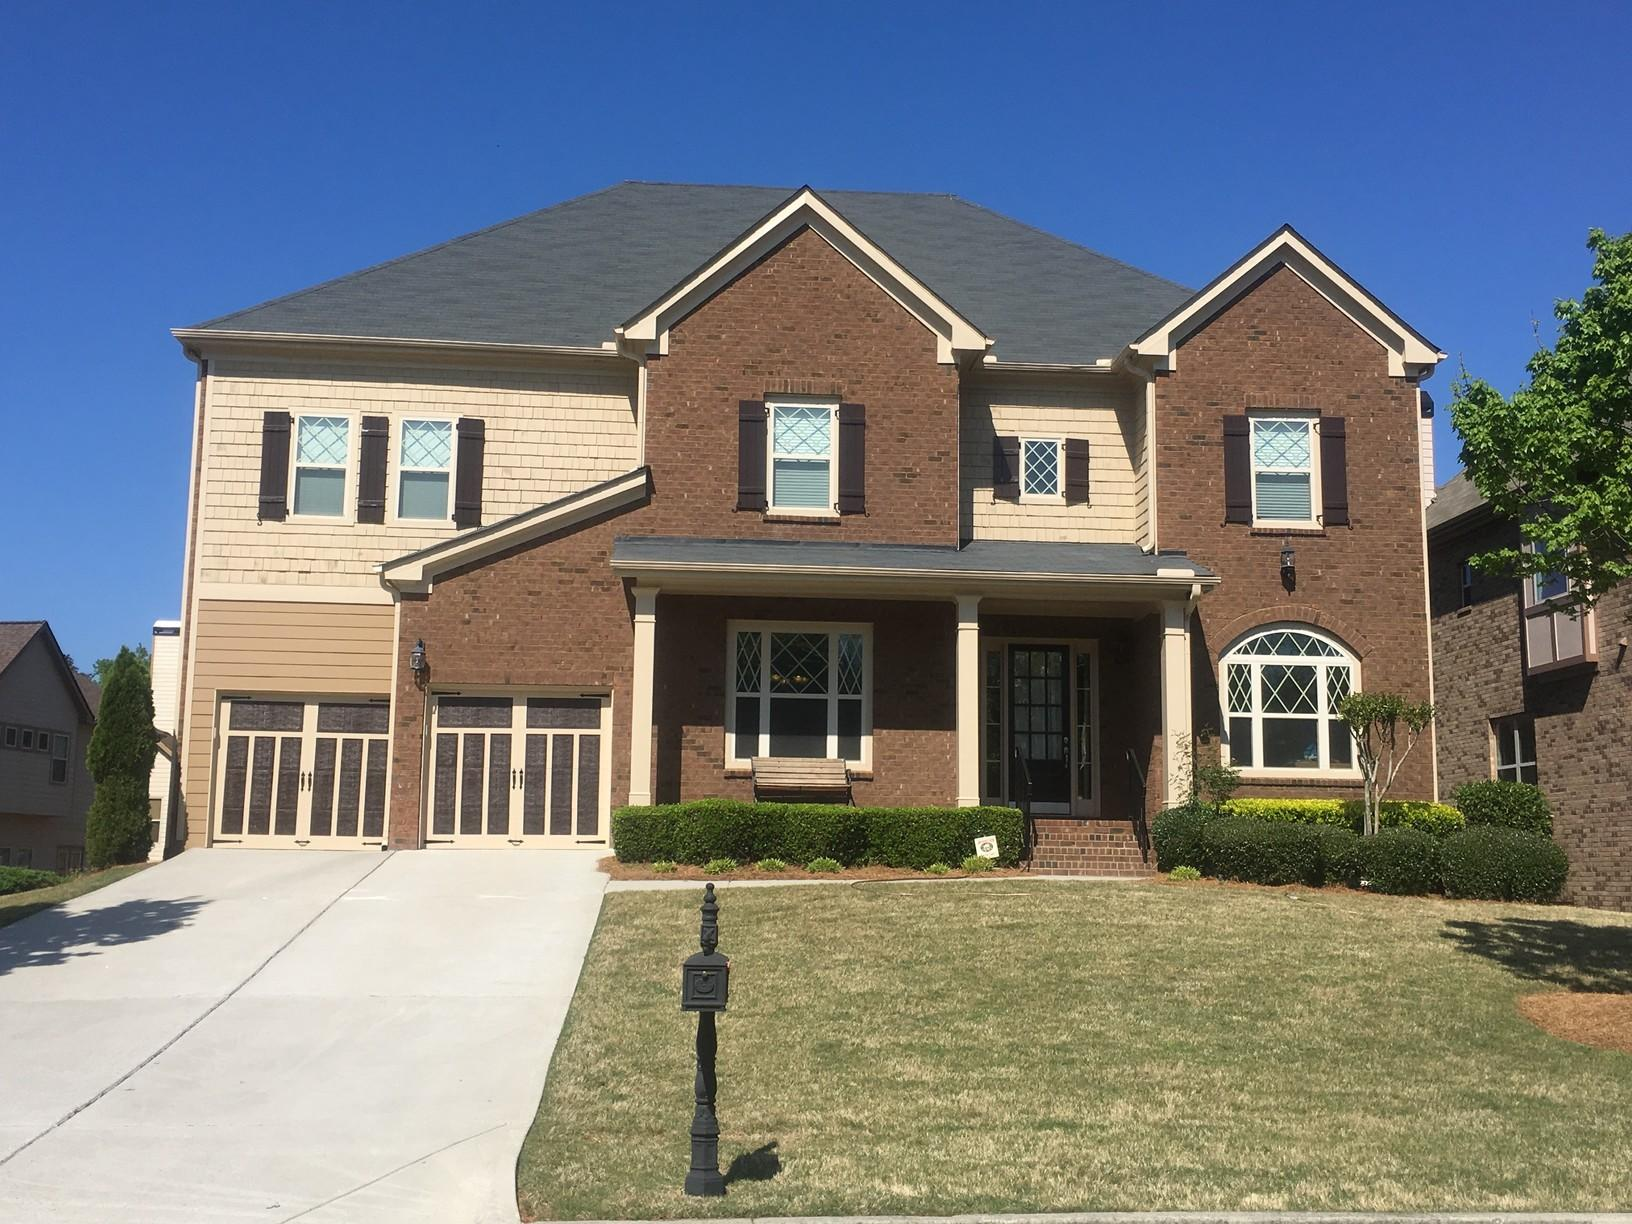 Insurance Claim - Roof replacement and Exterior Painting Project in Suwanee, GA - Before Photo